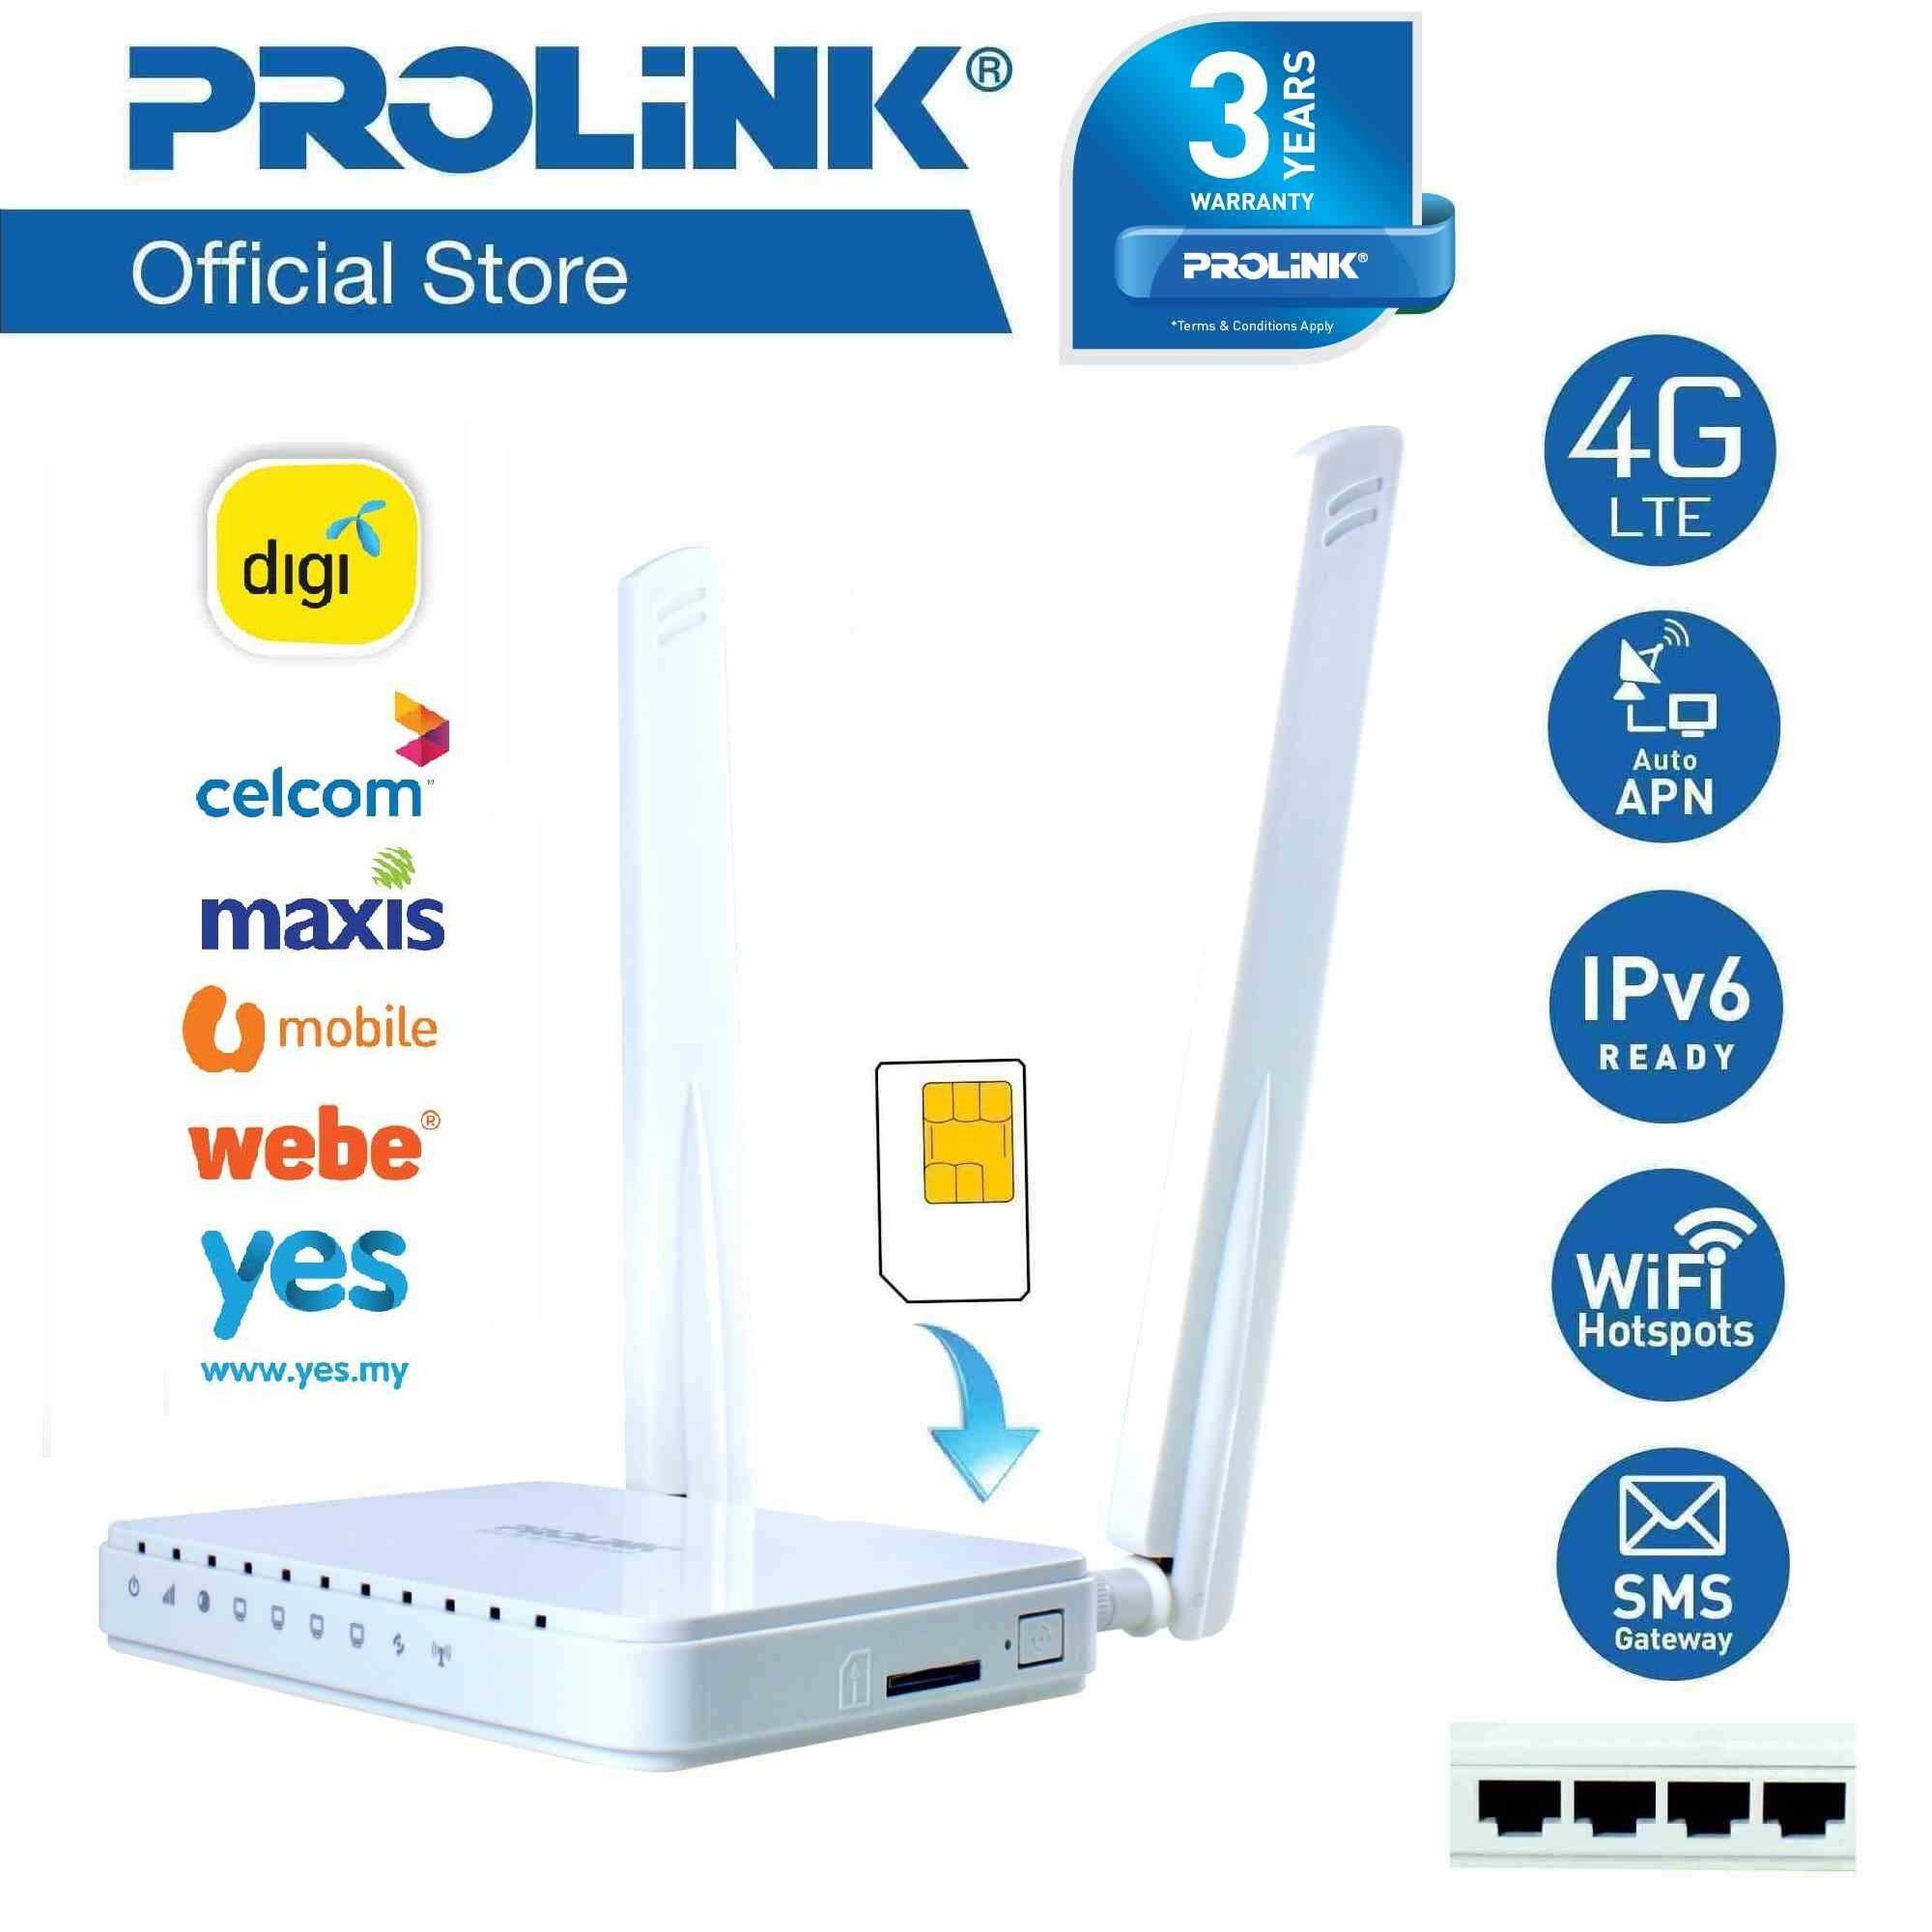 Features Prolink Prn3003l 4g Lte Wireless Router With 4 Port ...